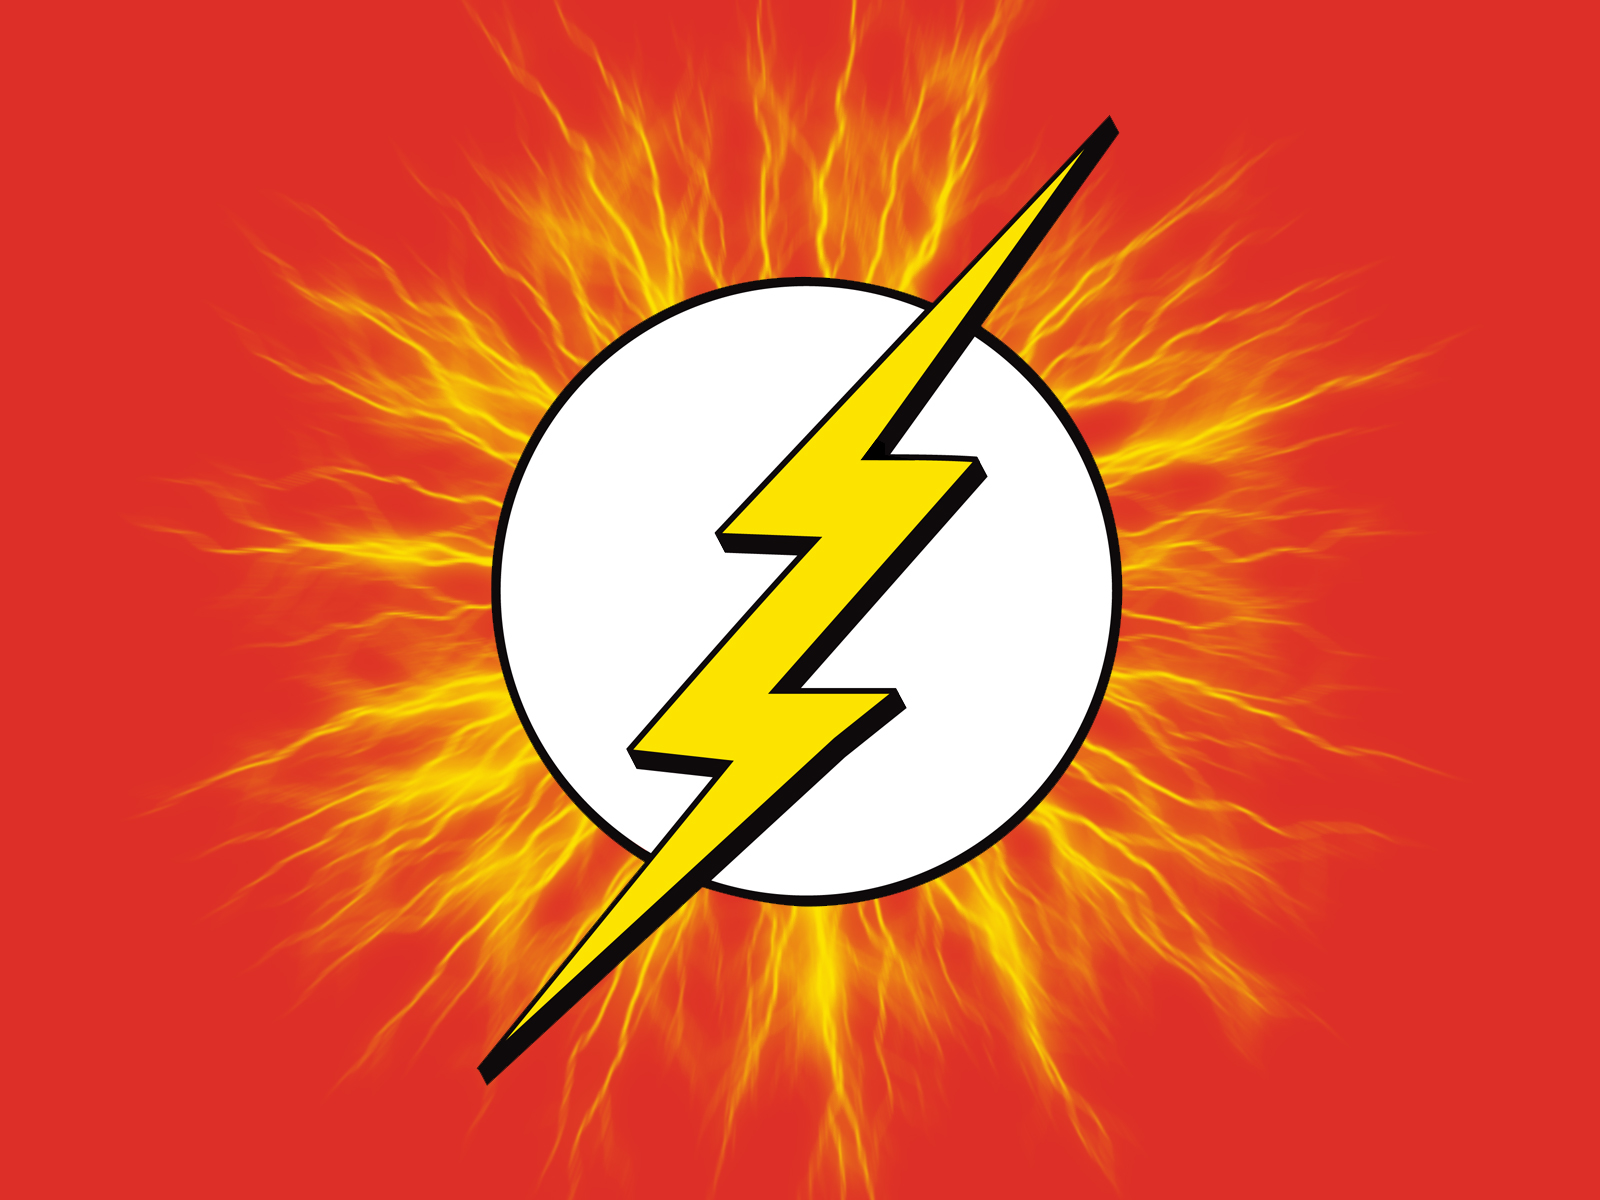 Flash Logo Wallpaper Wallpapersafari